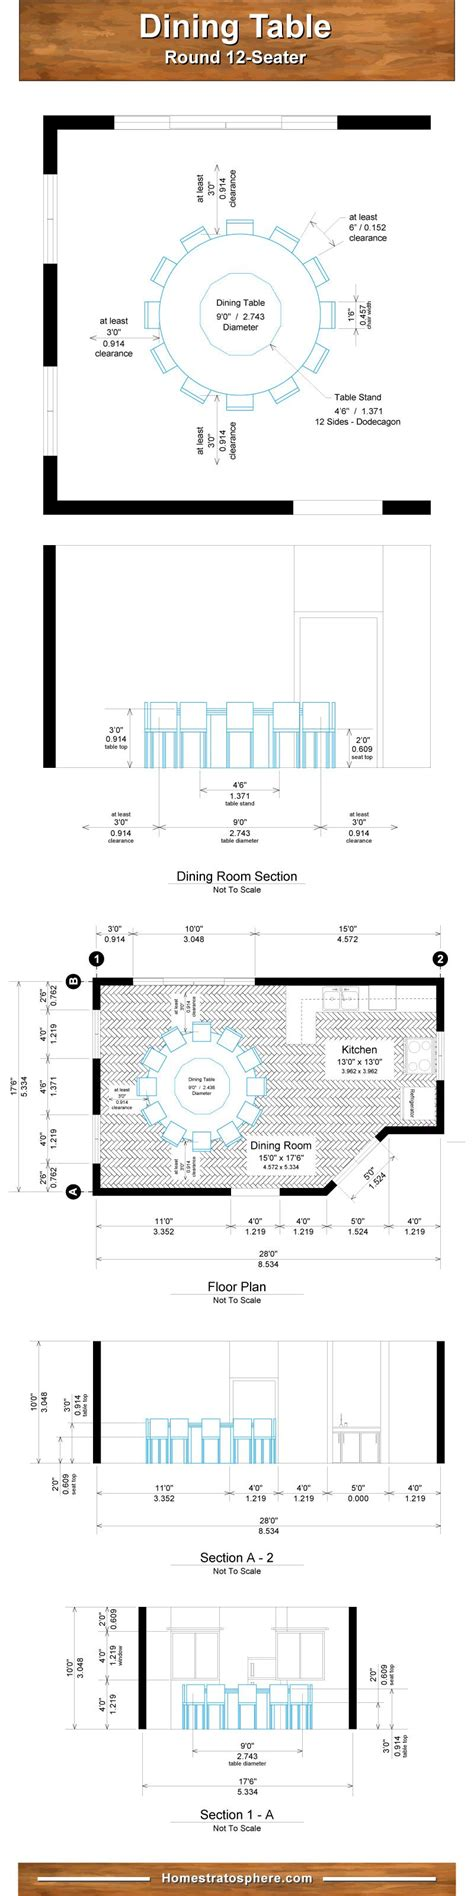 What dining table size do you need? Proper Dining Room Table Dimensions for 4, 6, 8, 10 and 12 People (Charts) | Dining room layout ...